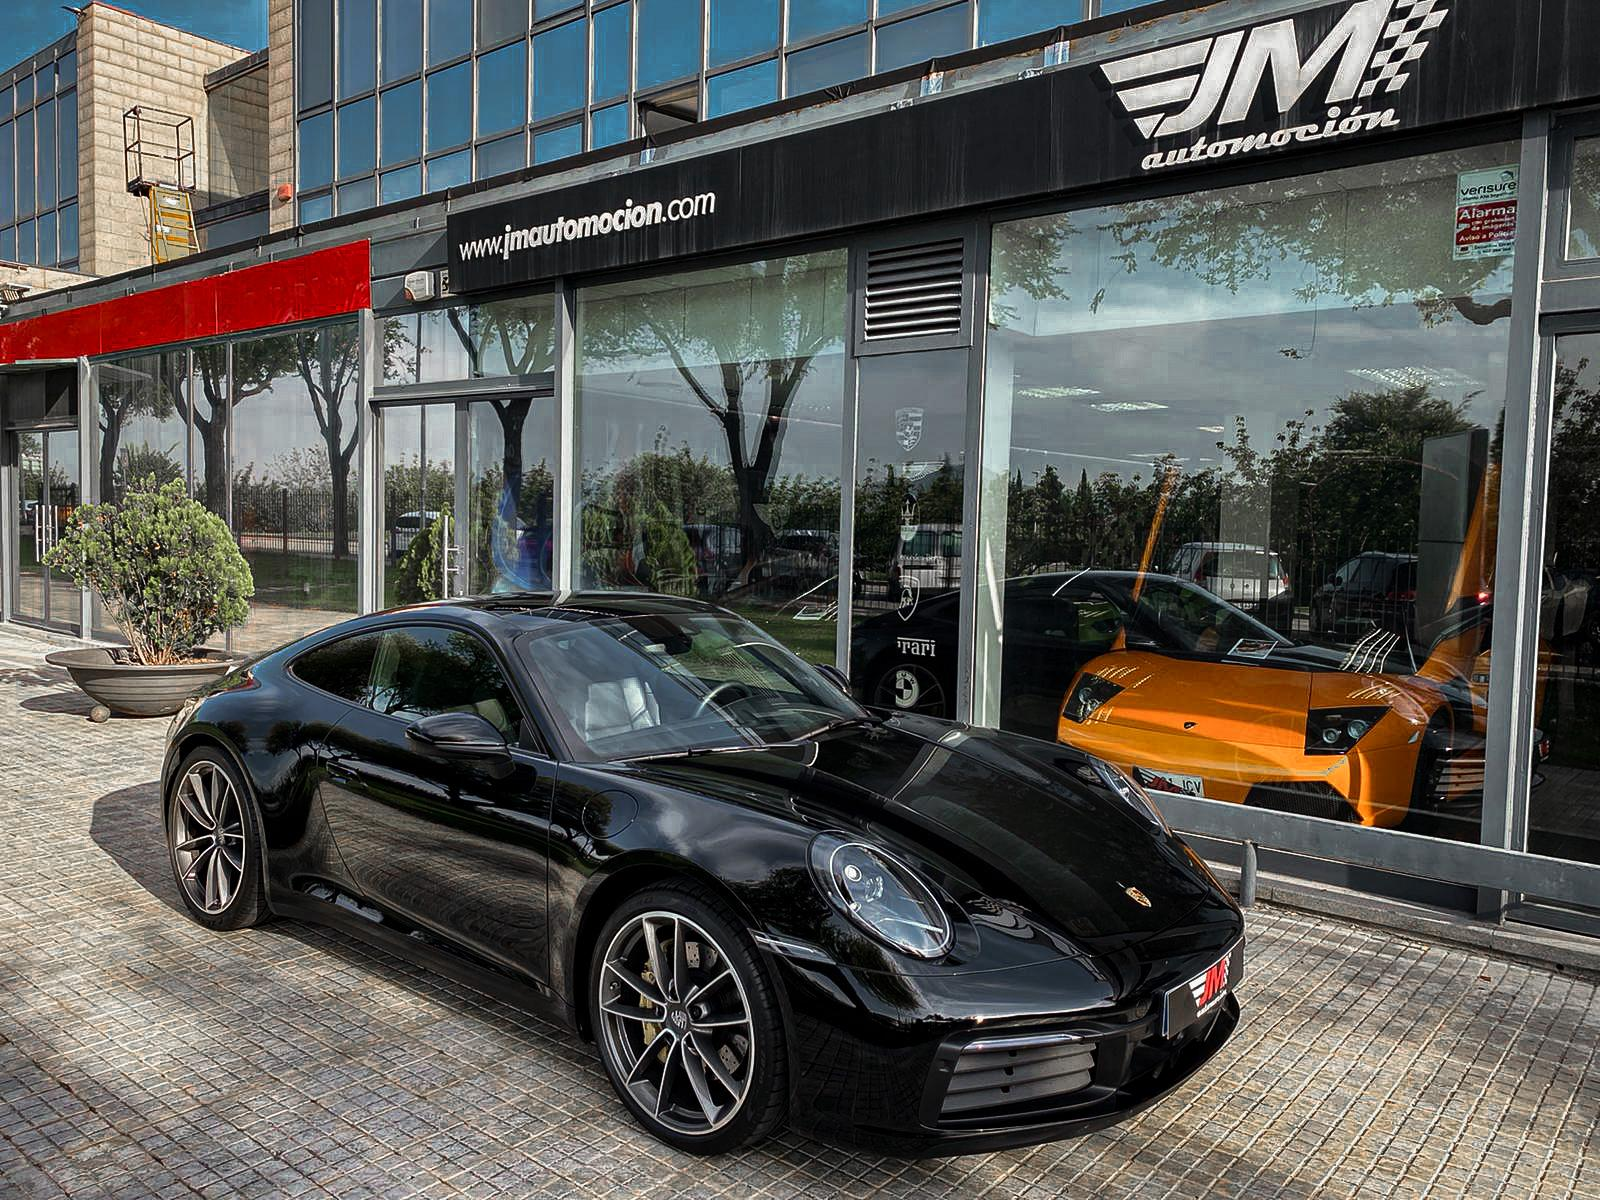 PORSCHE 911 992 CARRERA S COUPE -IMPECABLE ESTADO-